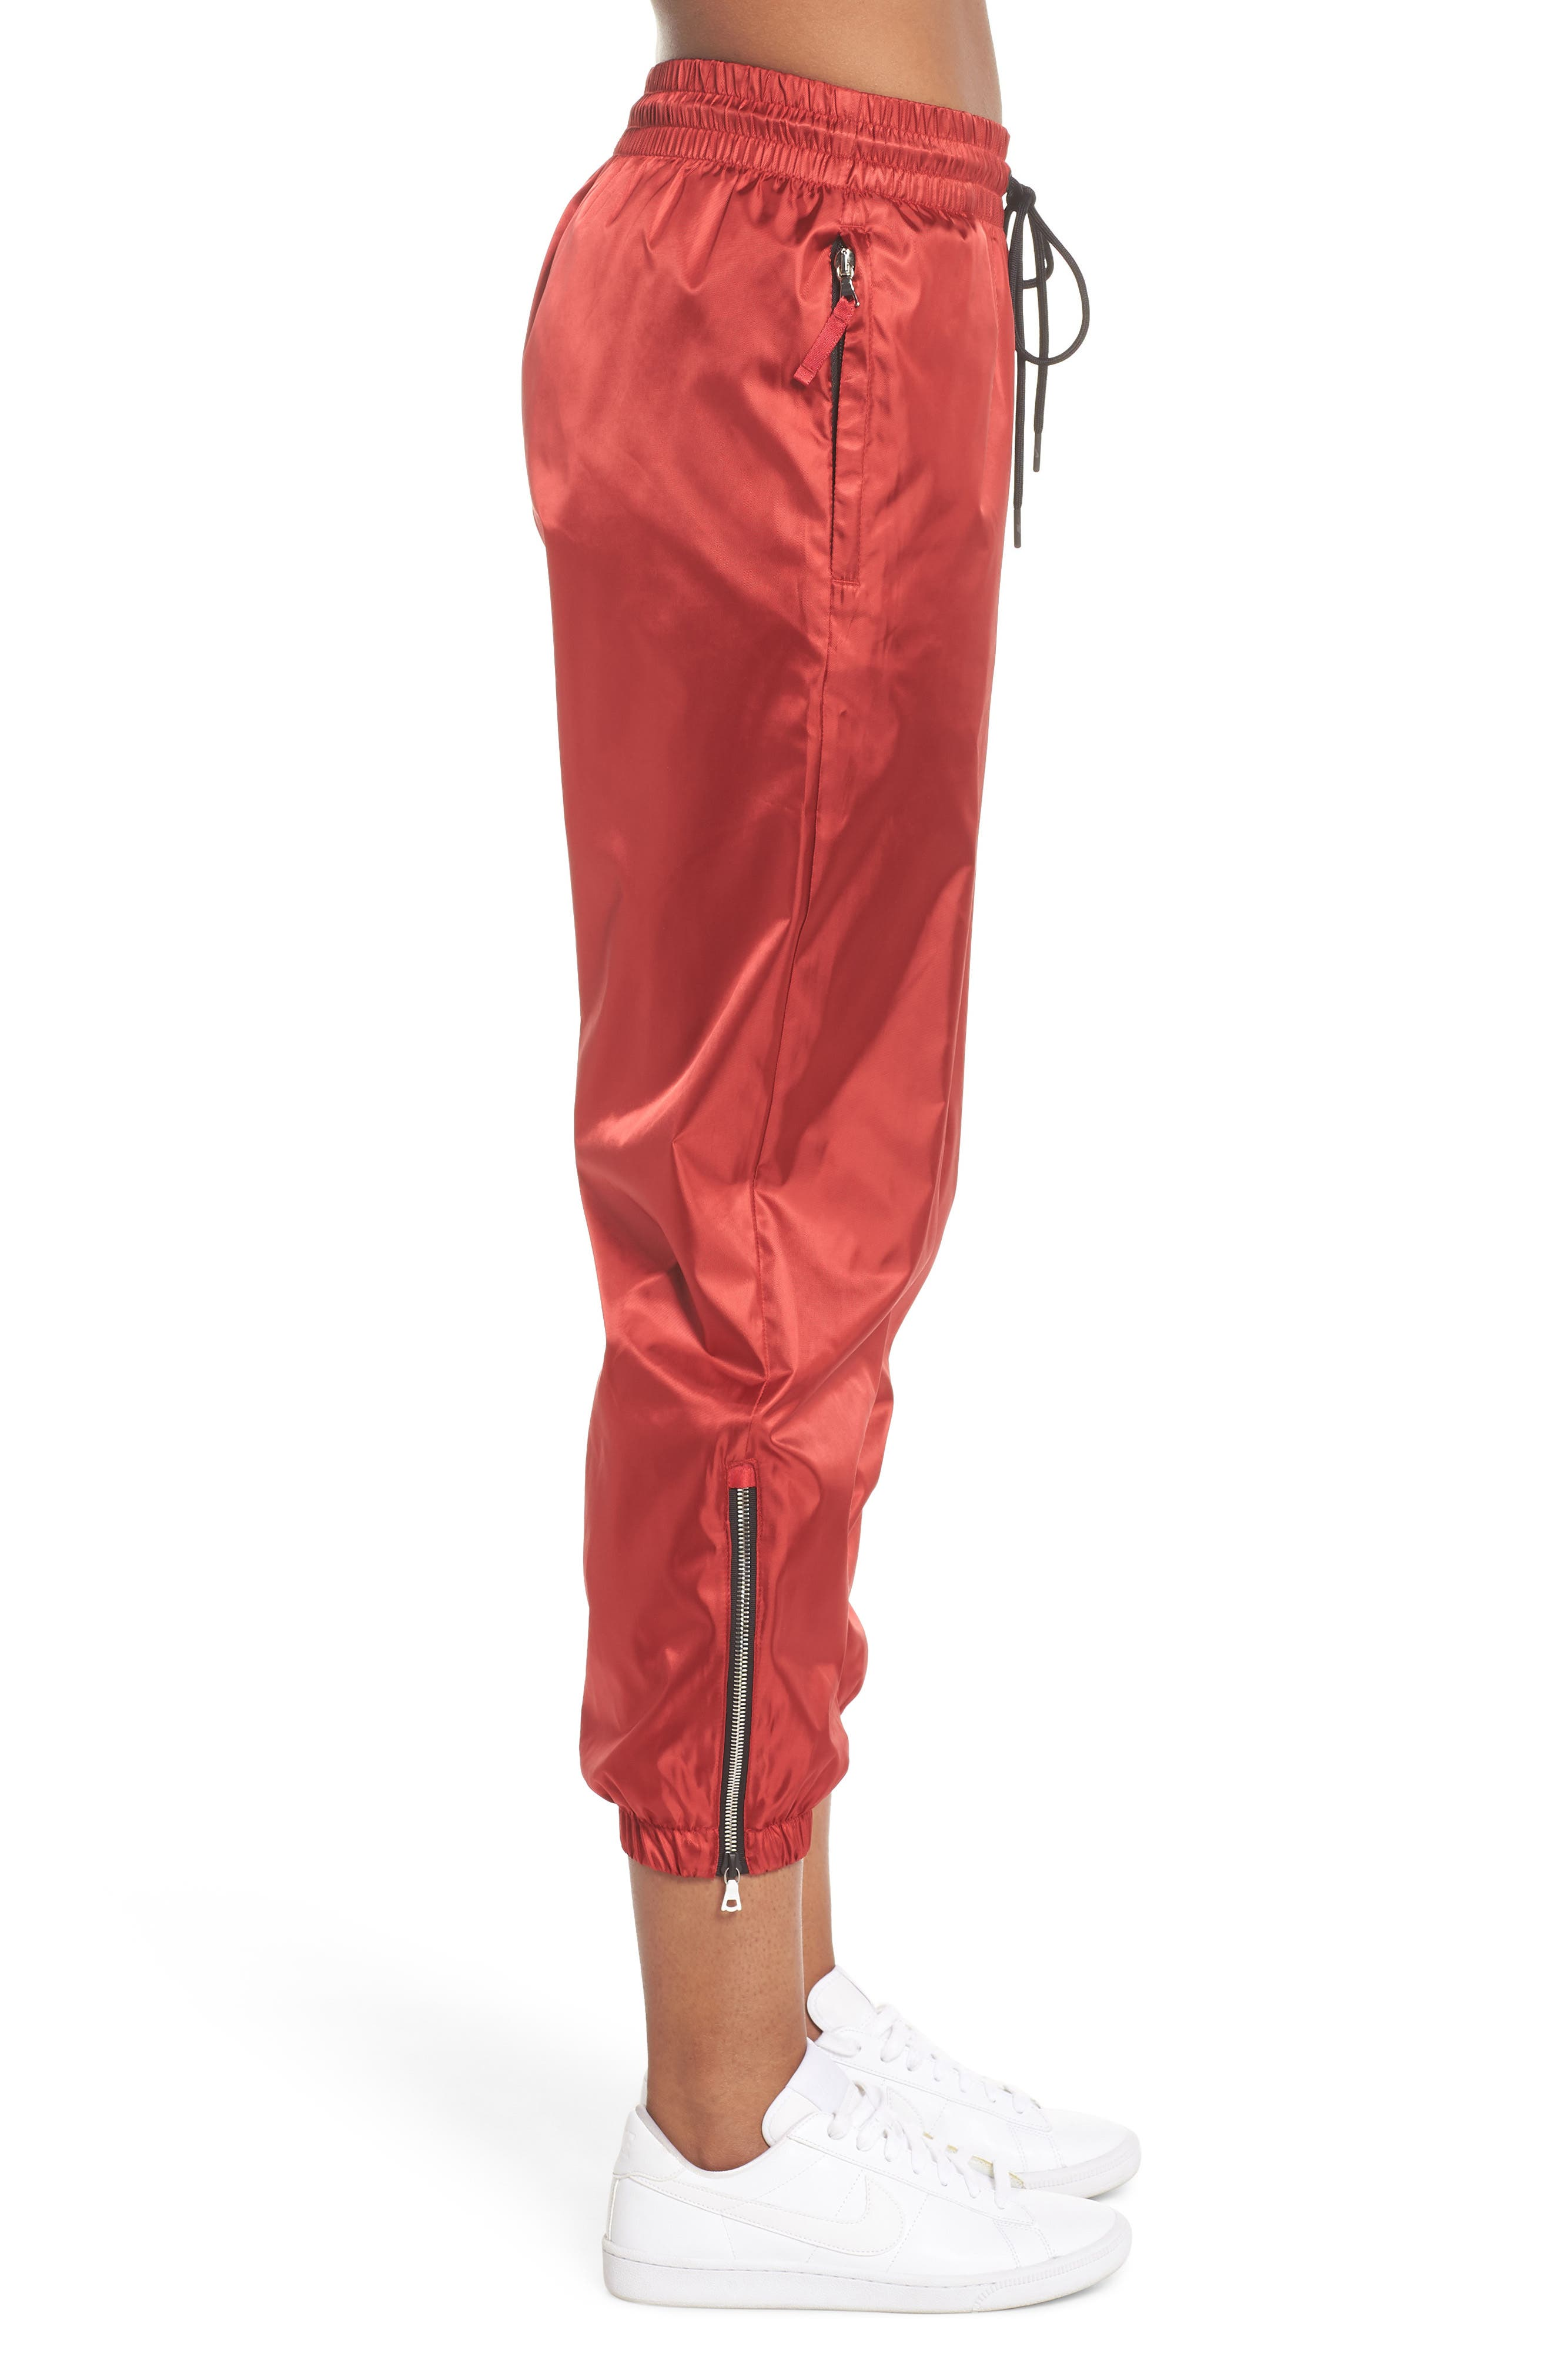 NikeLab Collection Women's Satin Track Pants,                             Alternate thumbnail 3, color,                             Gym Red/ Black